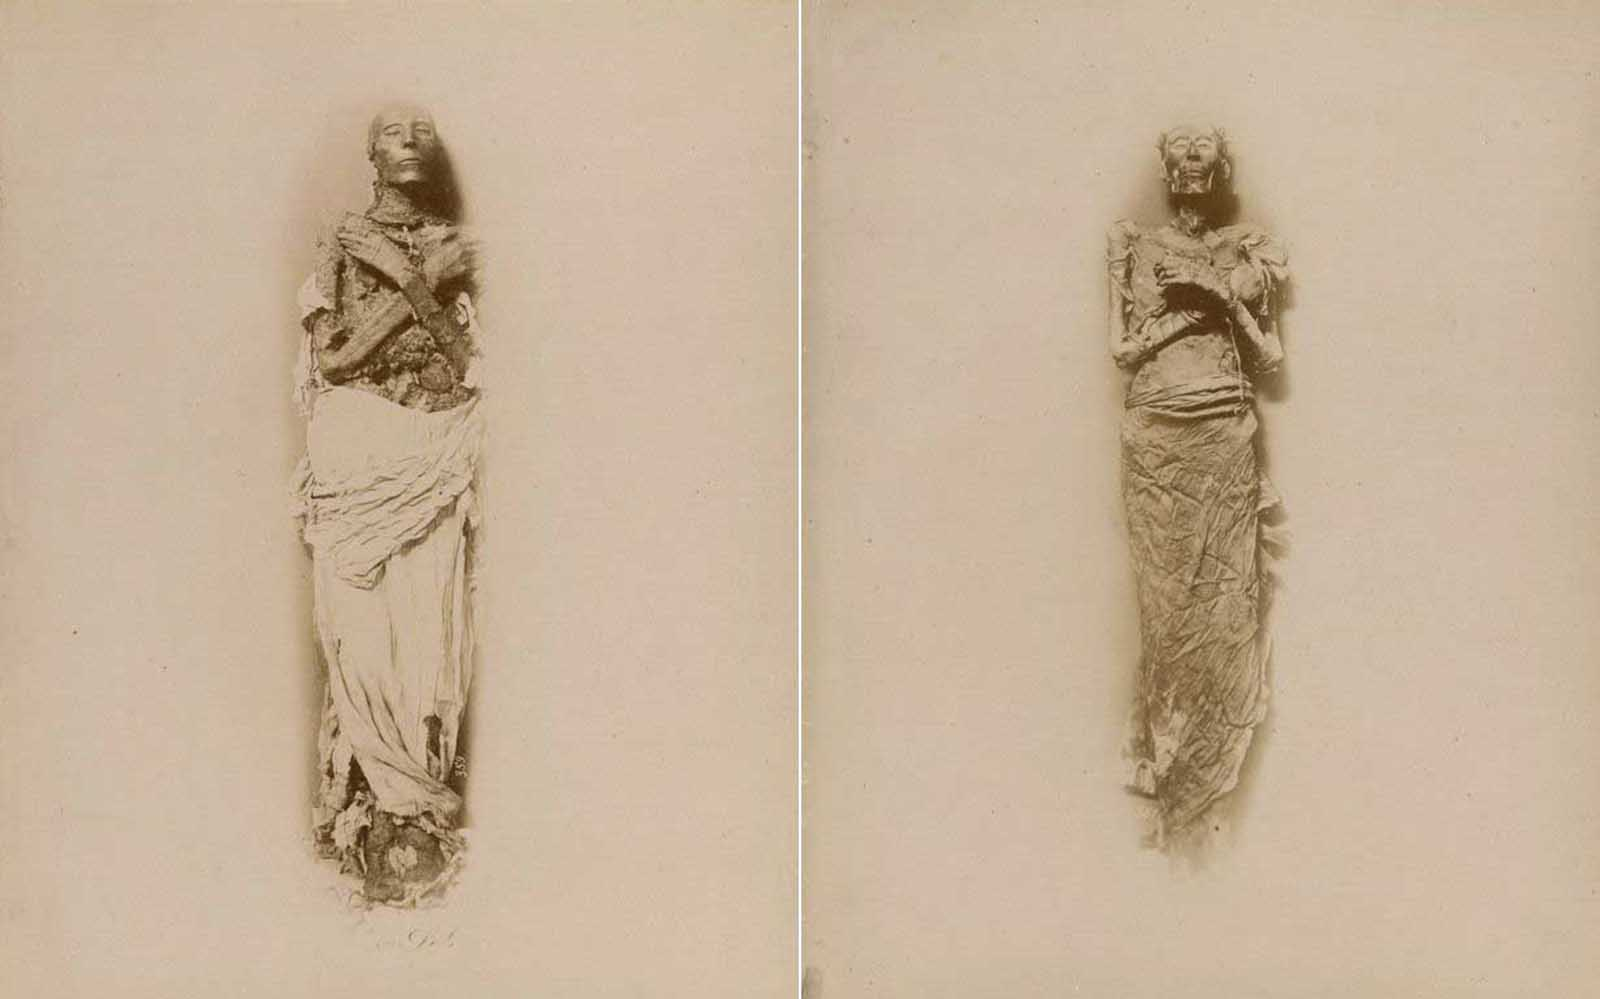 (Left) The mummy of Seti I, who reigned around 1290-1279 BCE. (Right) The mummy of Ramesses II, who reigned 1279-1213 BCE.